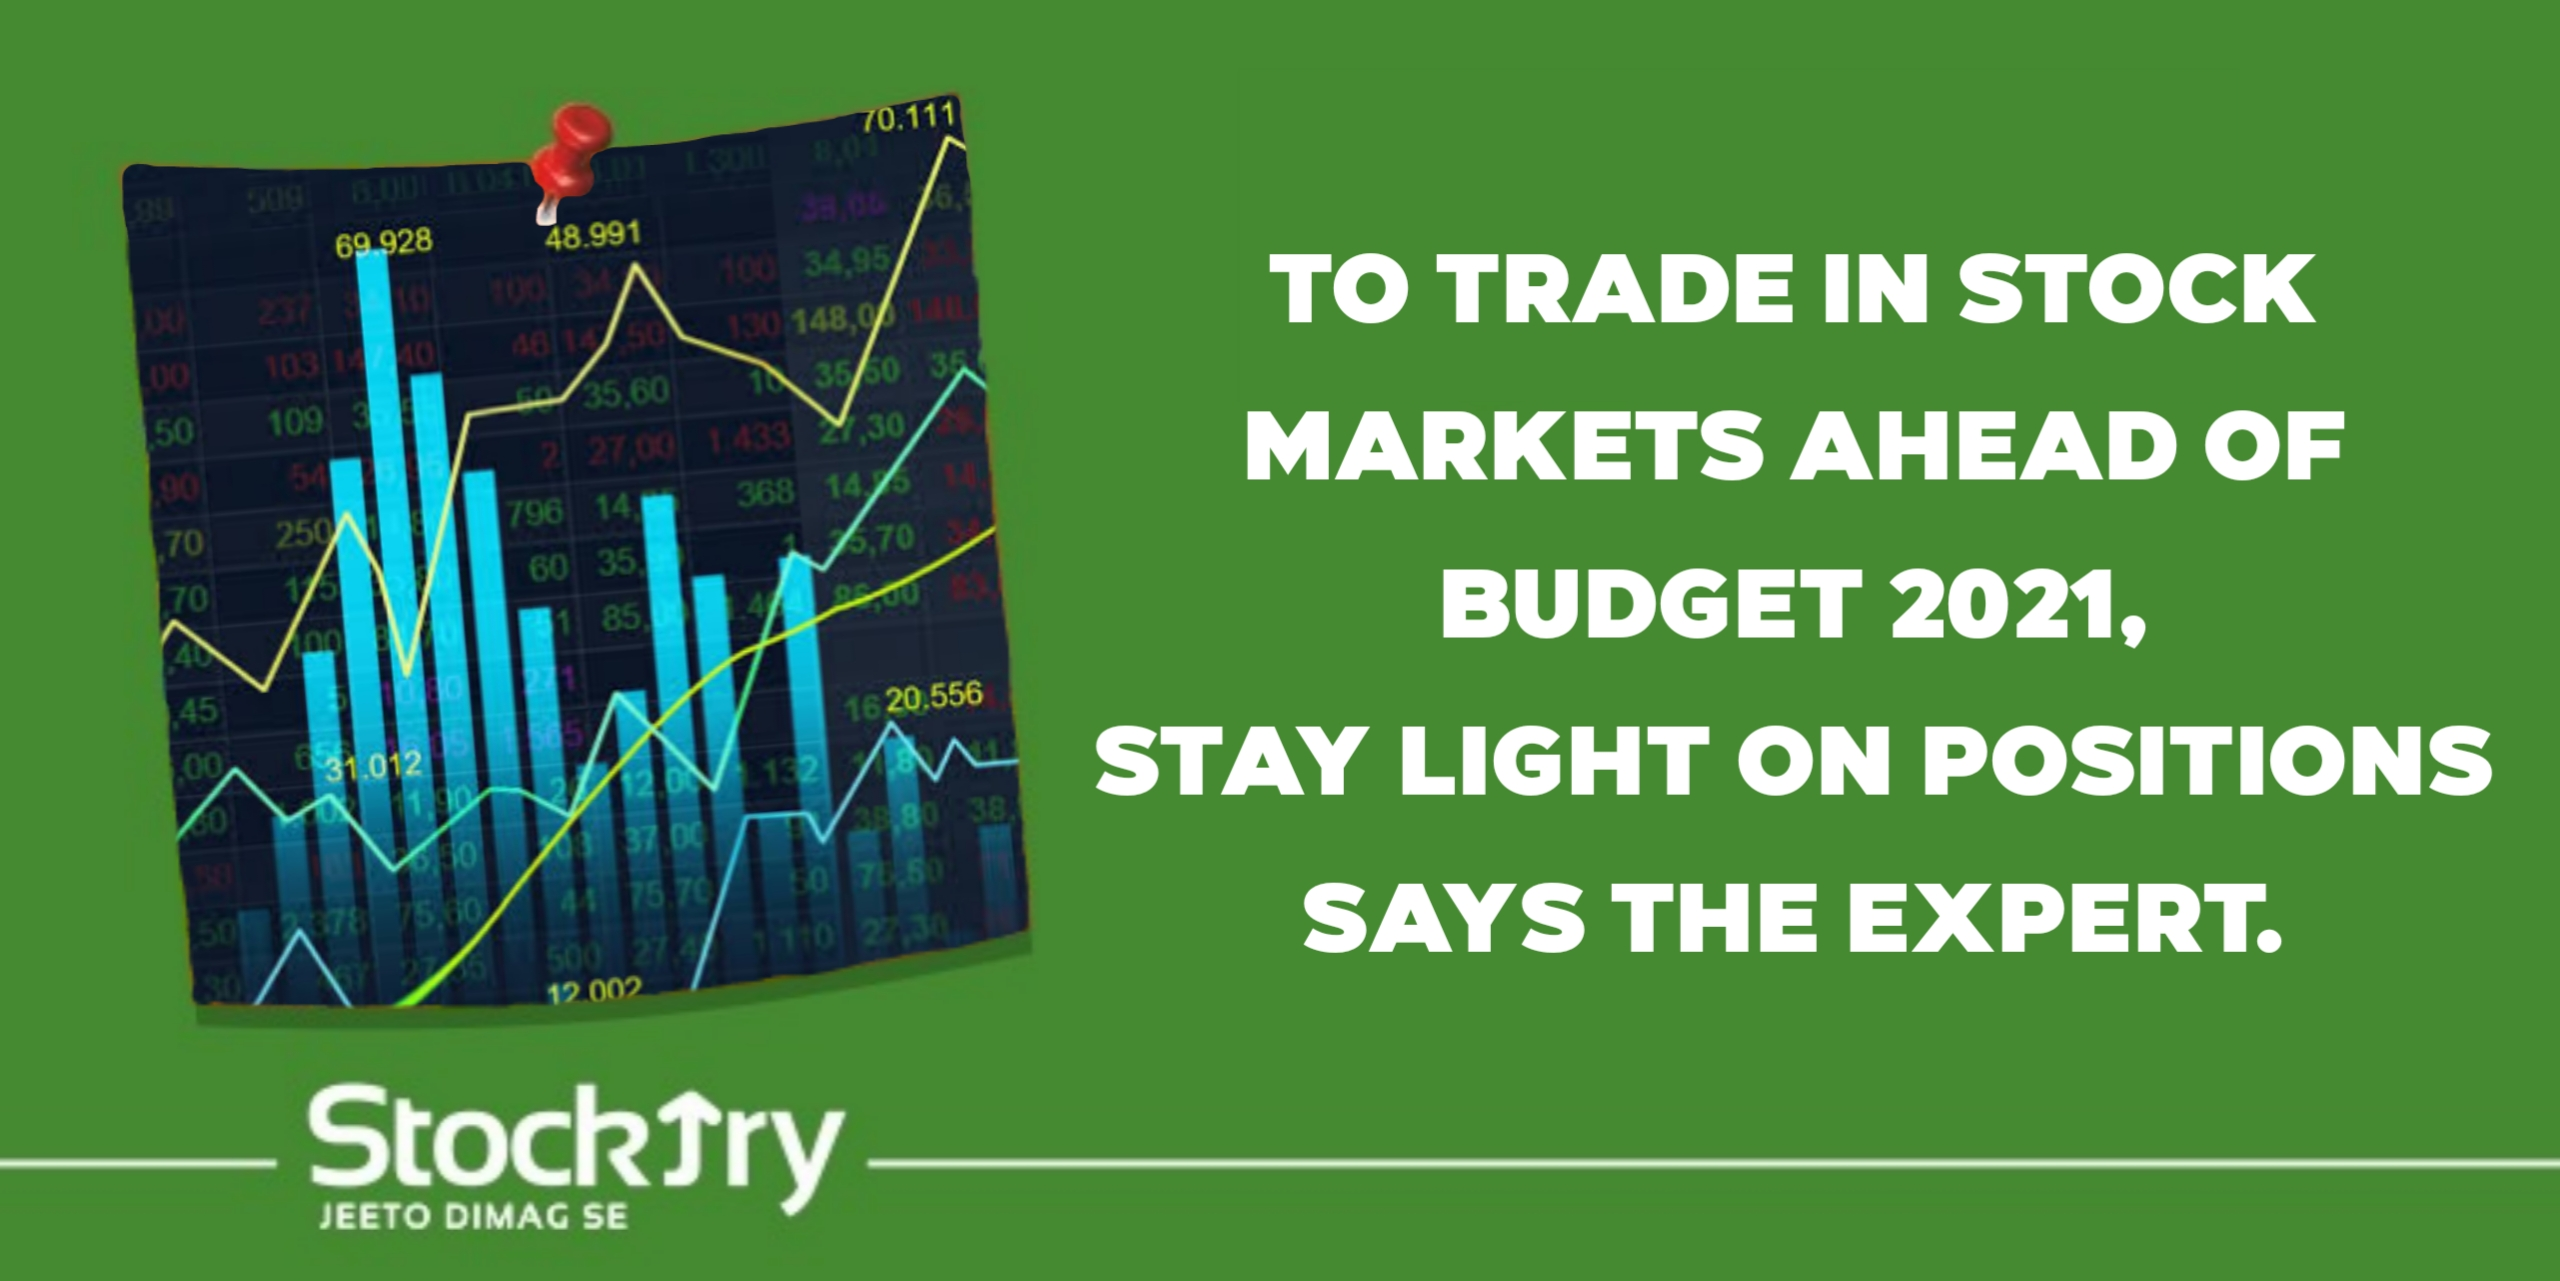 To Trade in Stock Markets Ahead of Budget 2021, Stay Light on Positions Says the Expert